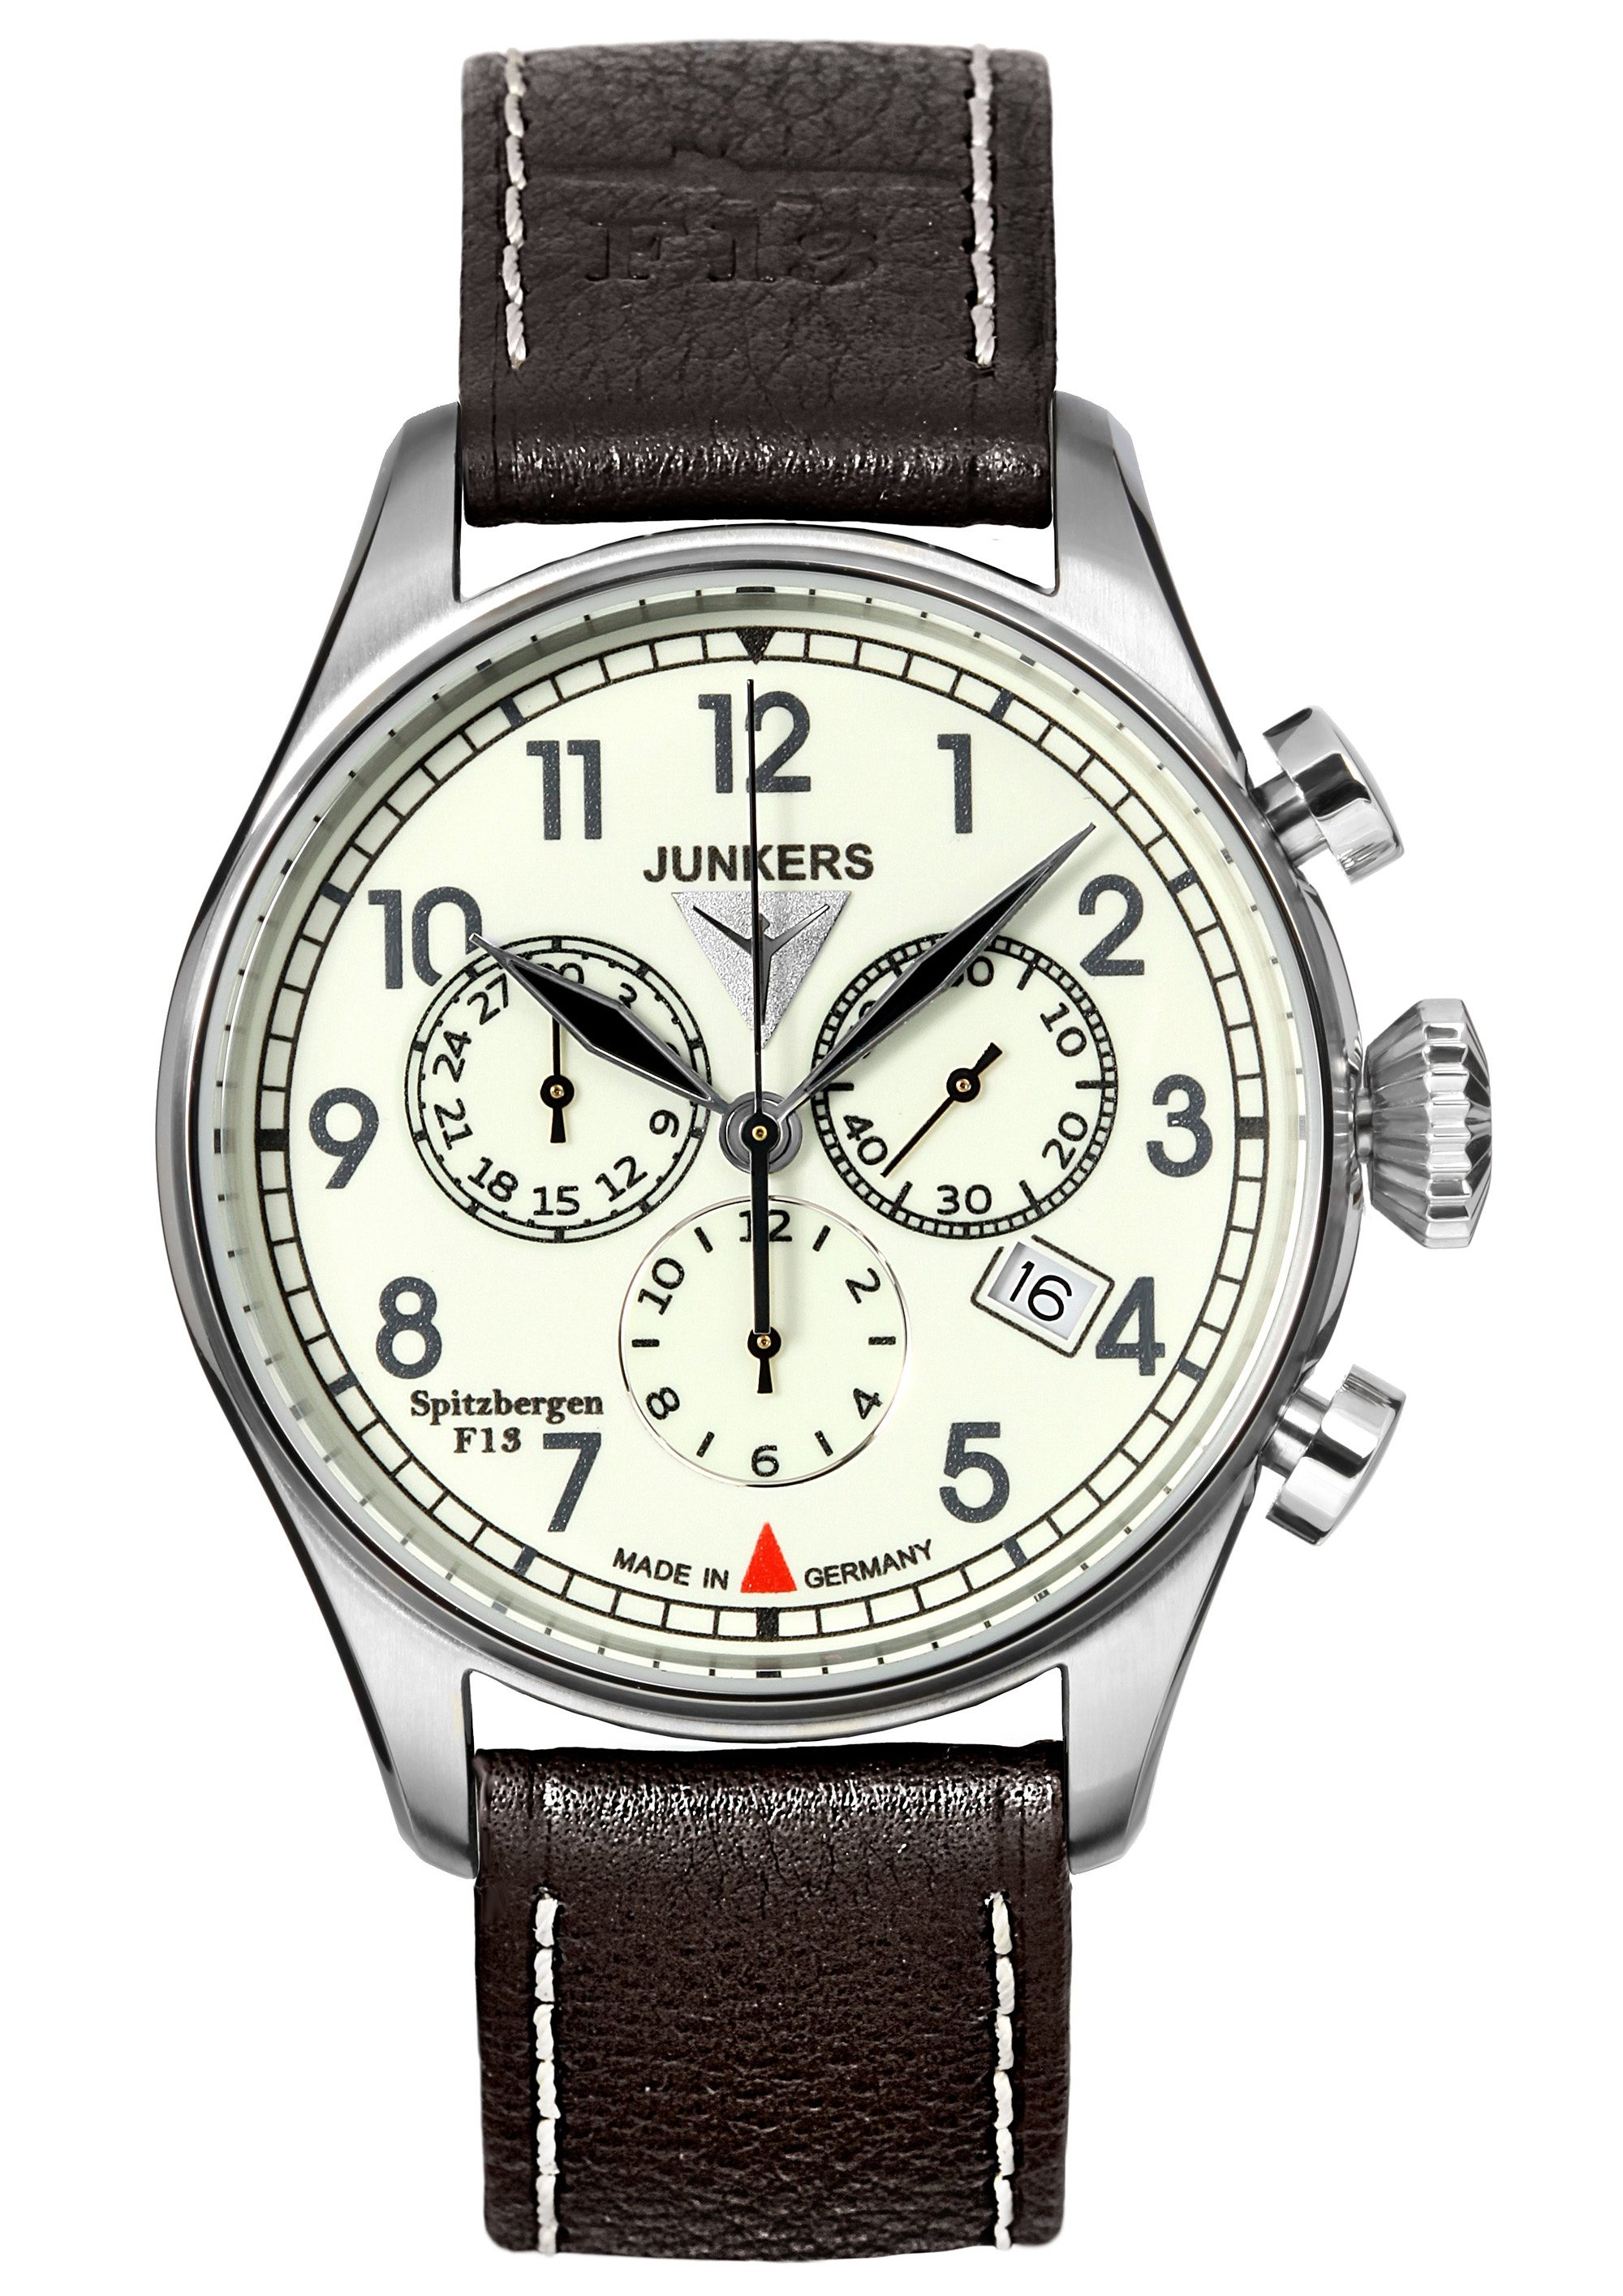 Junkers-Uhren Chronograph »Spitzbergen F13, 6186-5« Made in Germany